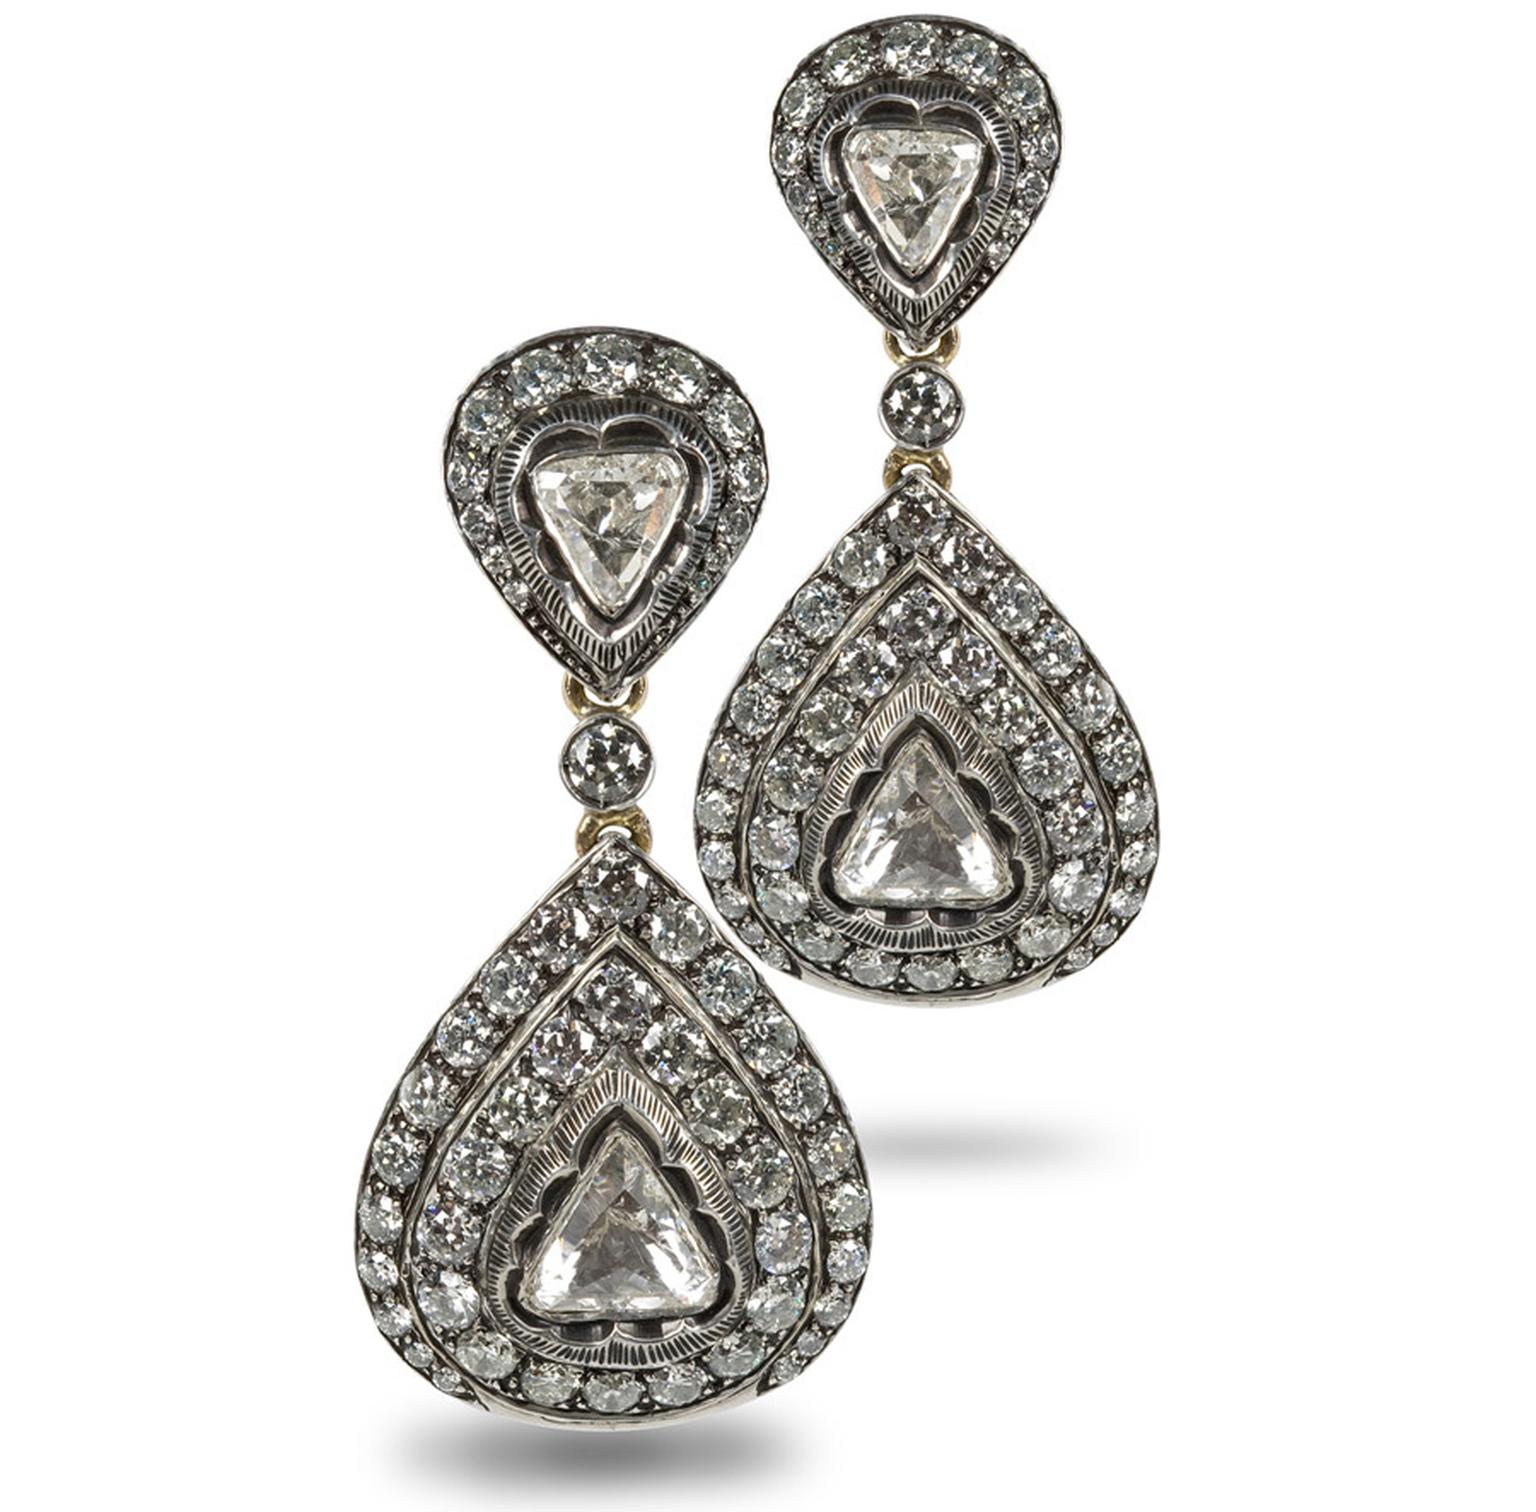 Amrapali-Penelope-Cruz-earrings-from-Amrapali